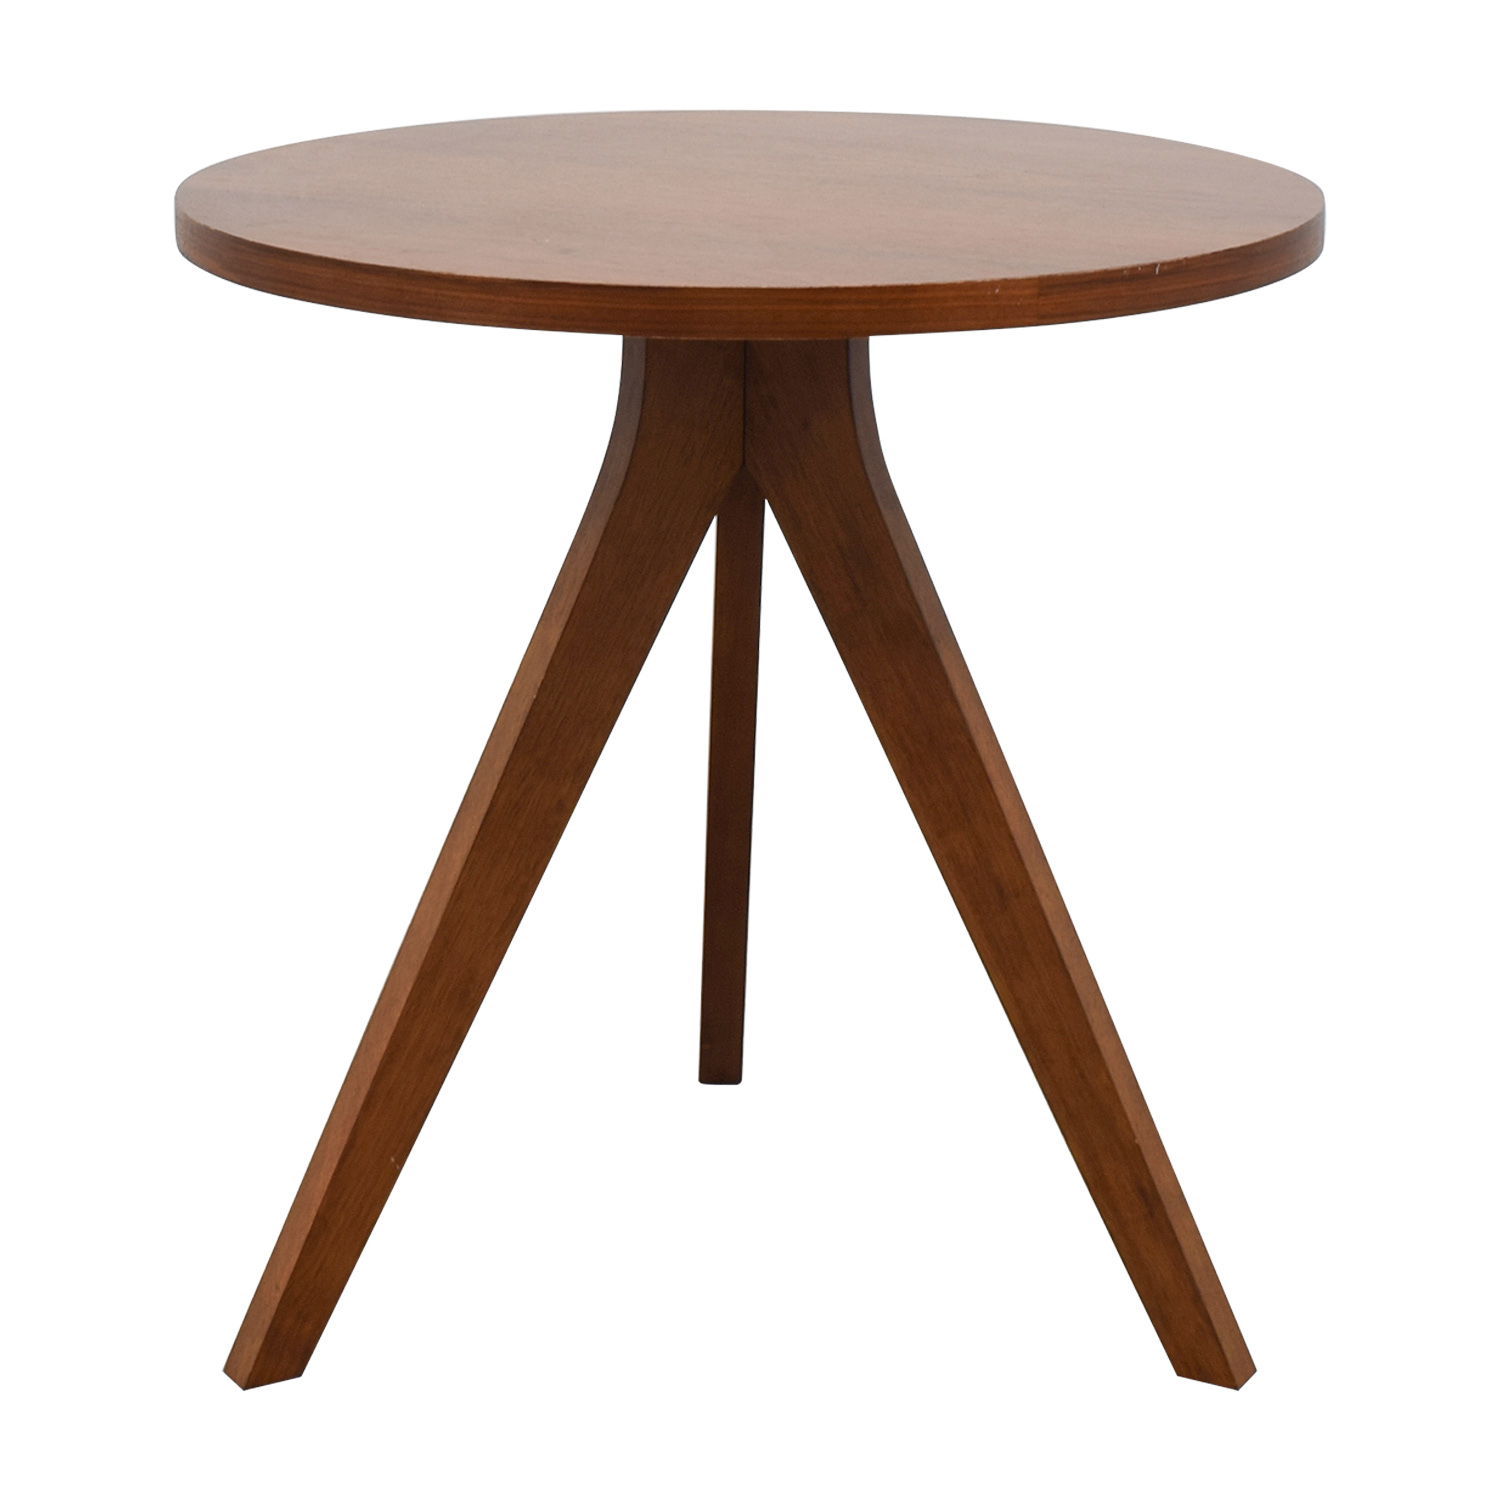 West Elm West Elm Walnut Tripod Table